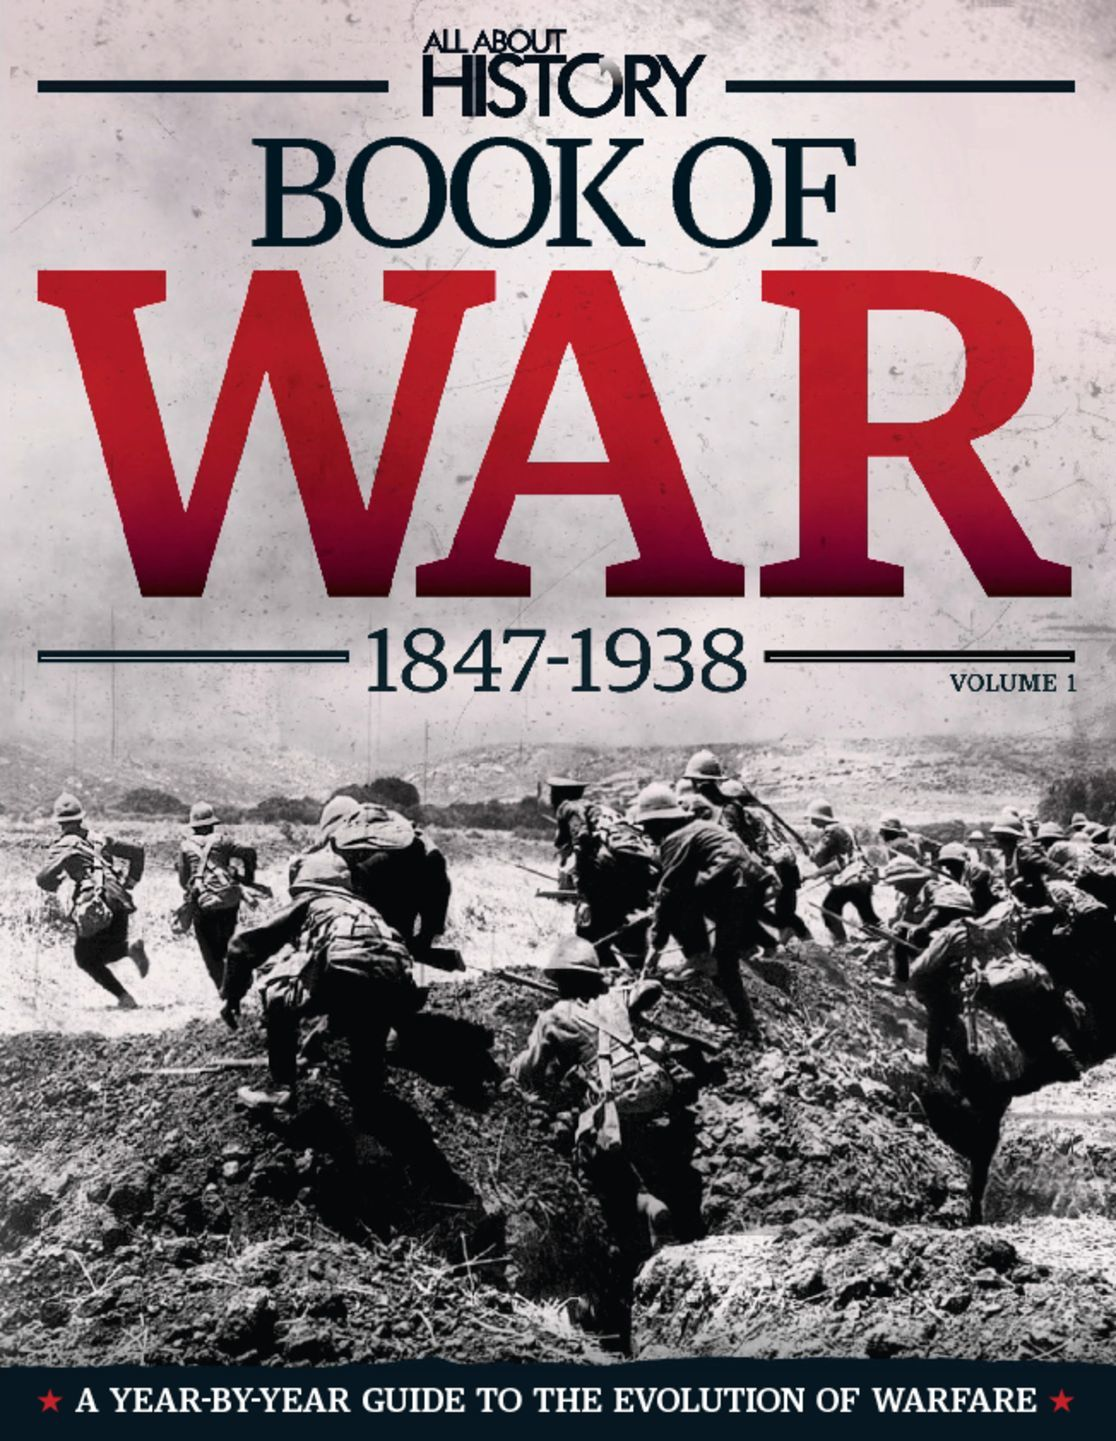 All About History Book of War Volume 1 Digital